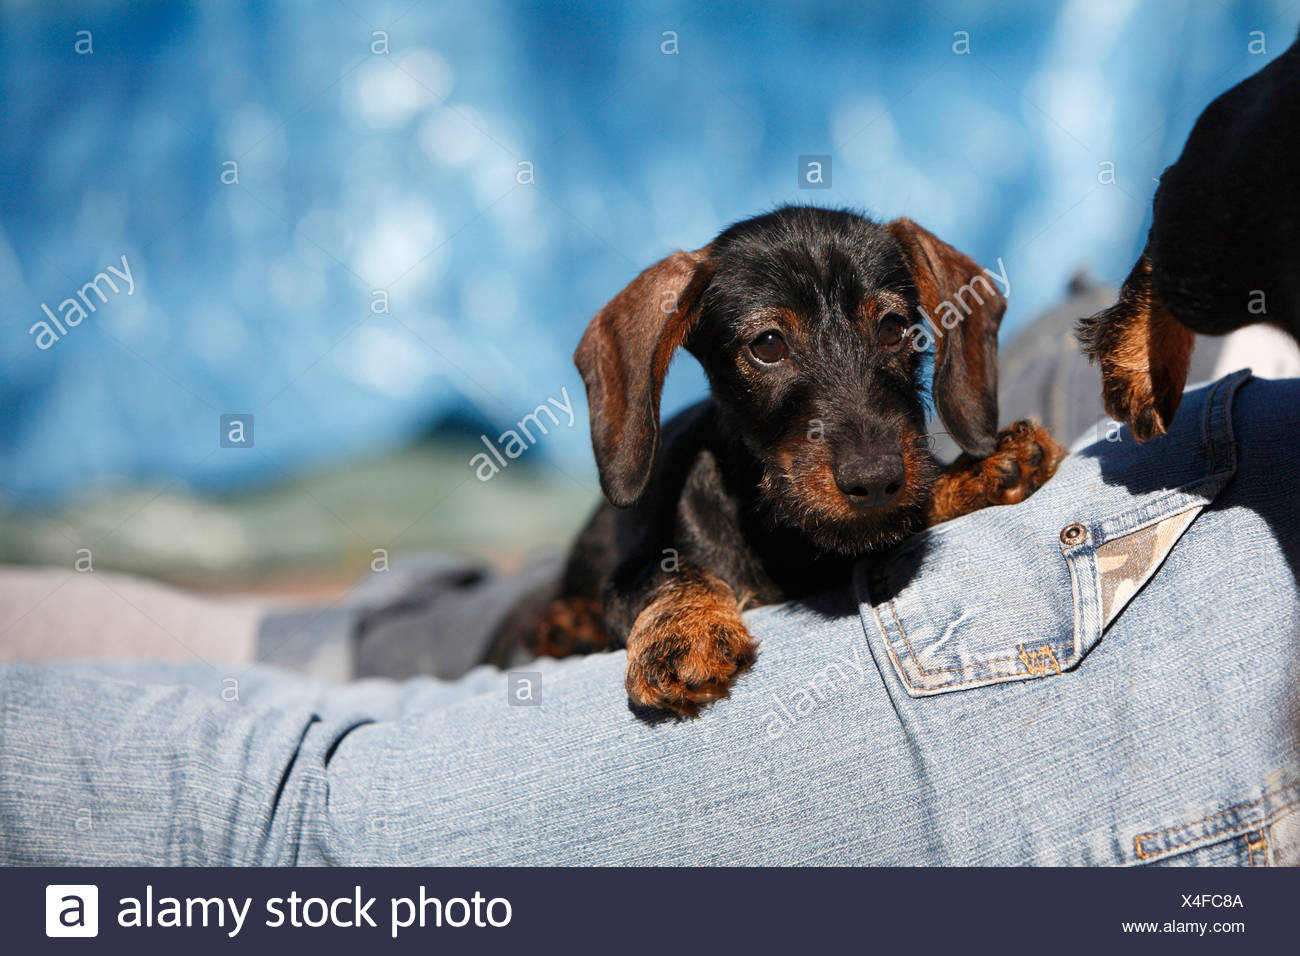 Wire Haired Dachshund Puppy Stock Photos & Wire Haired Dachshund ...